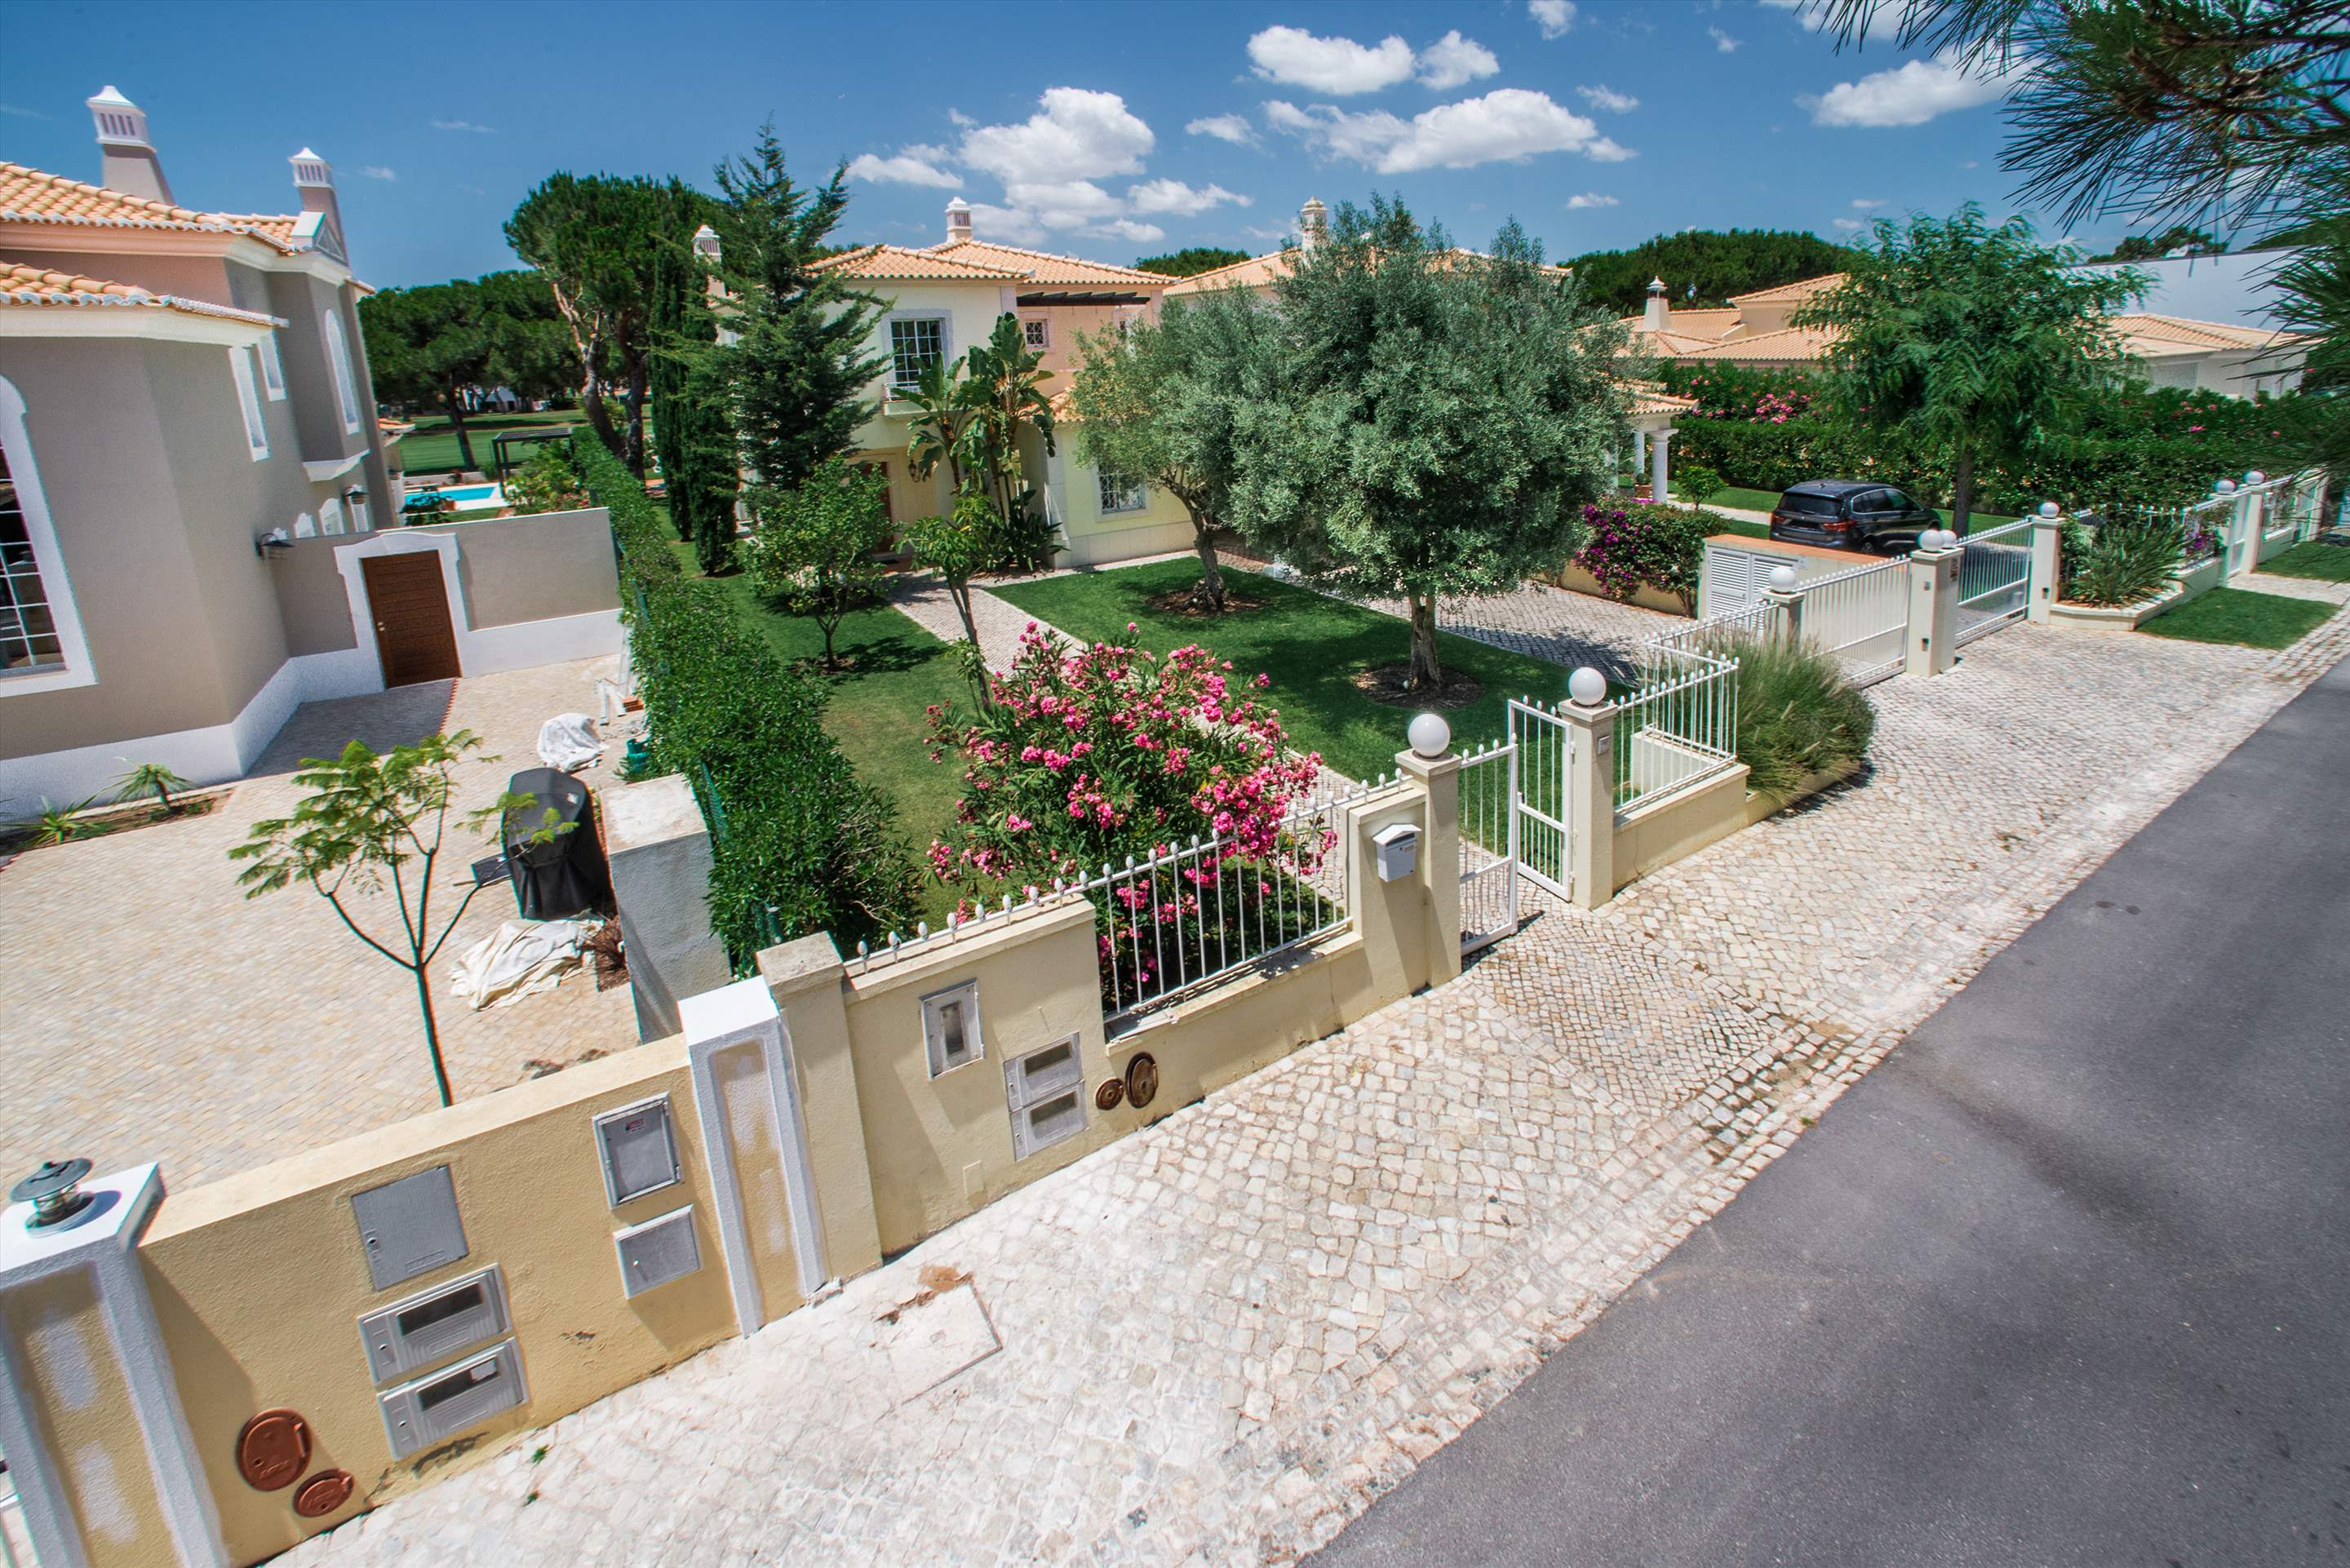 Vivenda Anita 1, 4 bedroom villa in Vilamoura Area, Algarve Photo #24